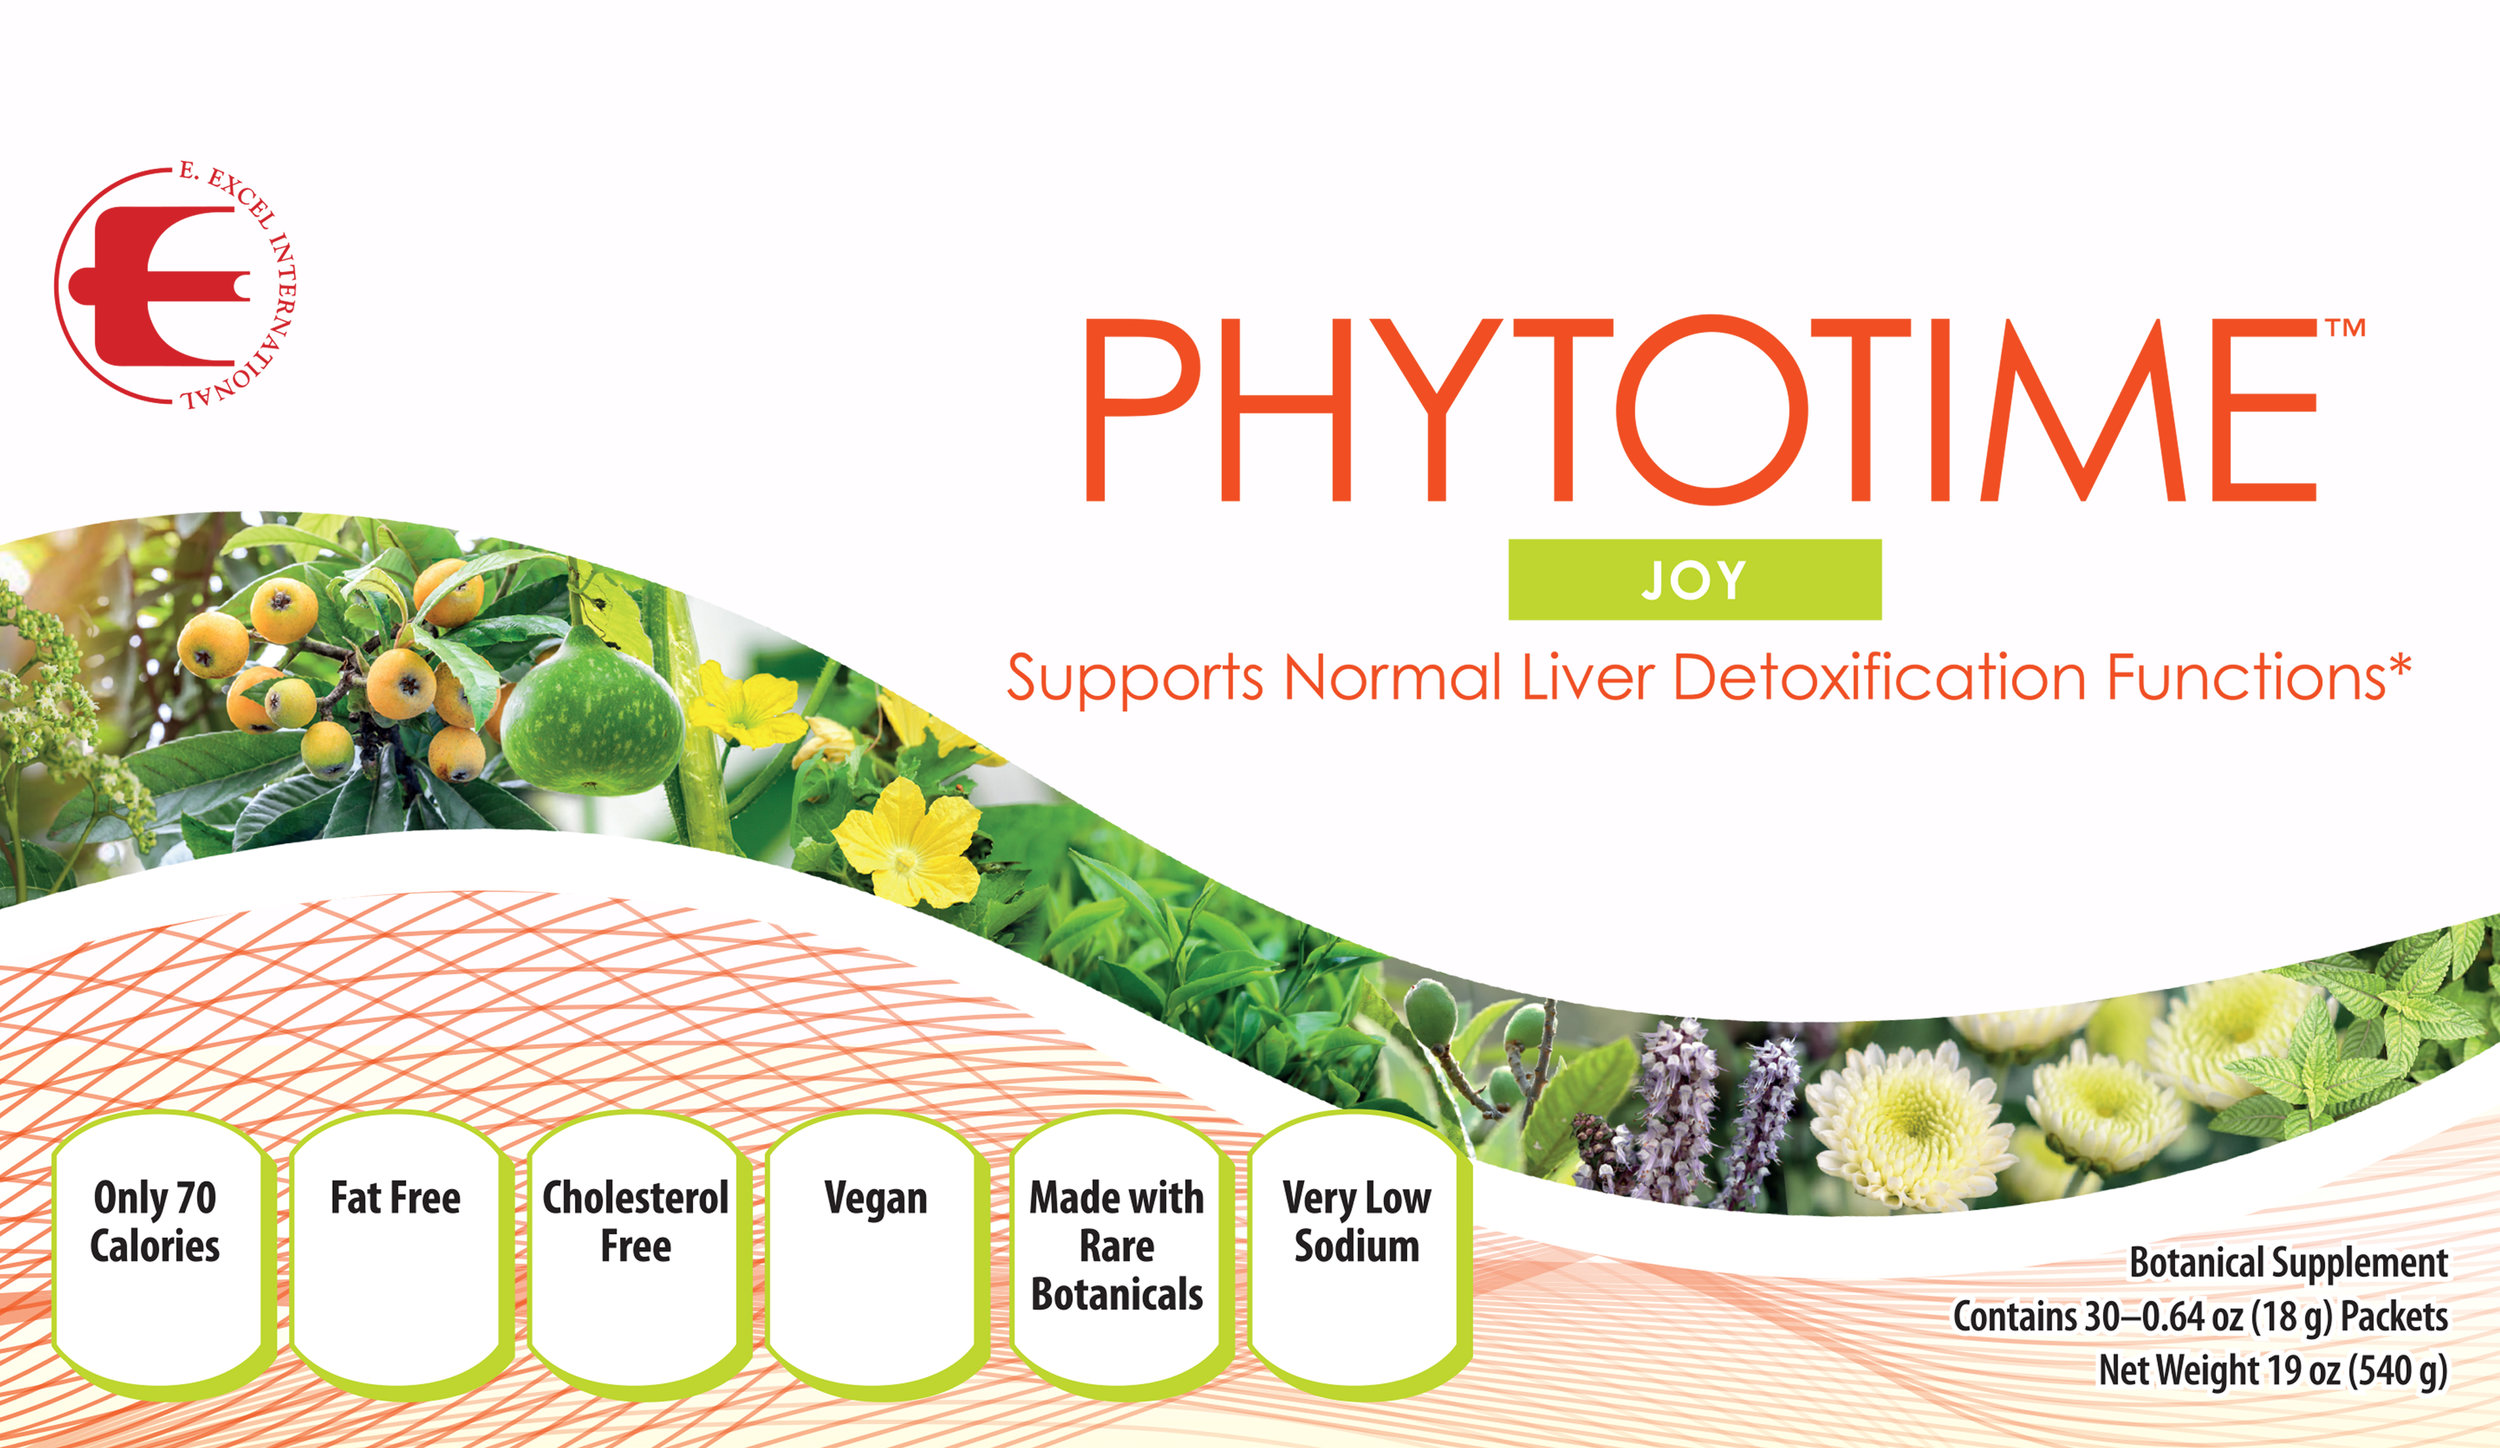 phytotime joy - A cooling tea which helps to support normal liver detoxification functions, the body's normal cleansing functions and normal anti-inflammatory functions.* Phytotime Joy has a sweeter taste.Featured Ingredients: Chinese Mesona, Oriental Raisin Tree Fruit, Green Tea, Loquat Leaf, Chrysanthemum, Winter Melon